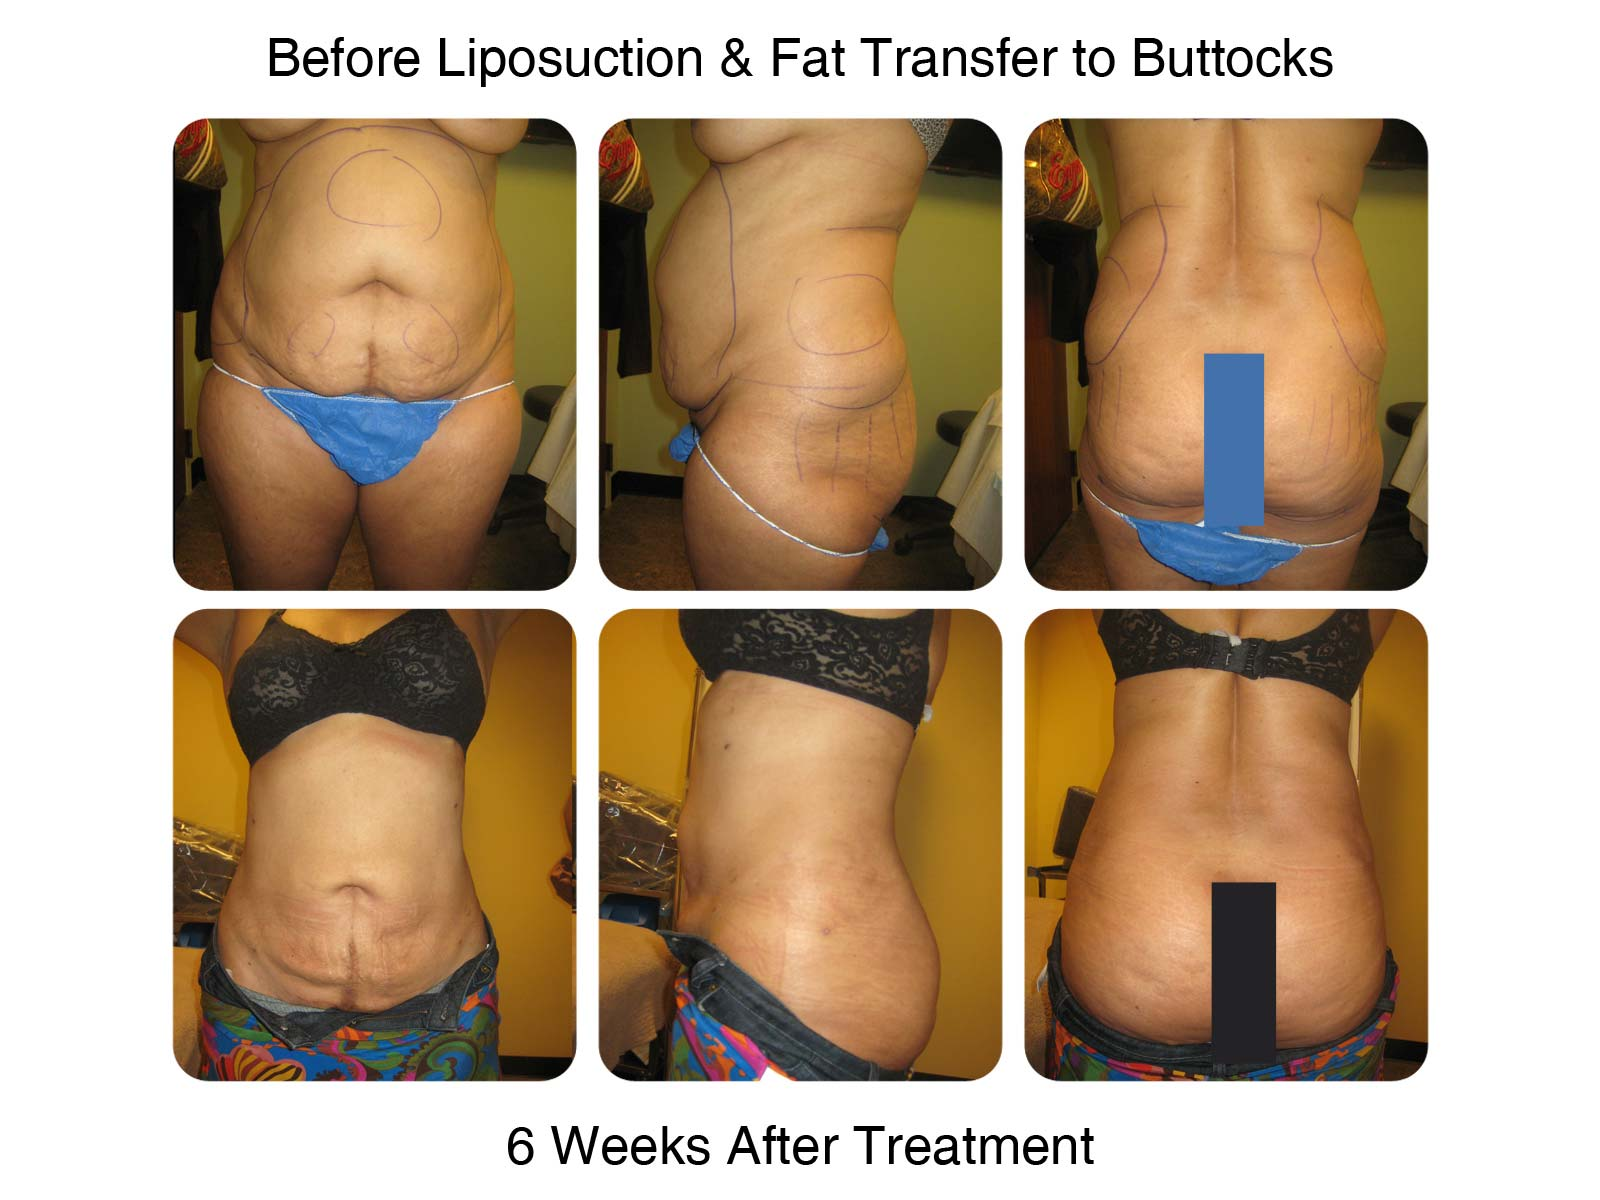 Lipo and Fat Transfer to Butt - 6 Weeks After